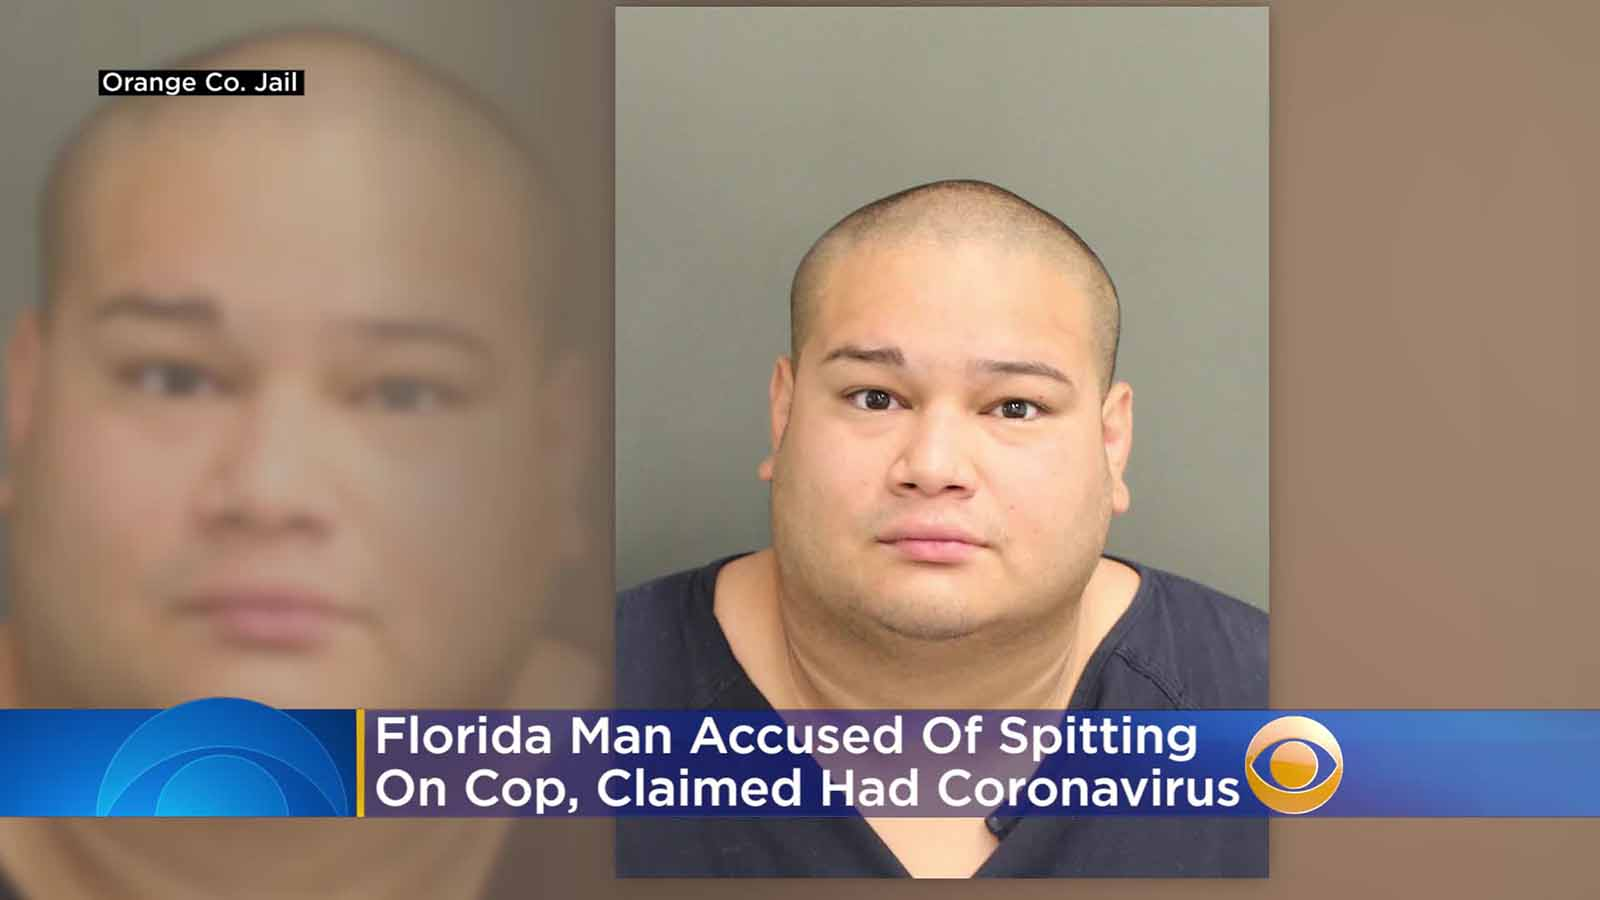 2020 has been a crazy year so far, so naturally Florida Man is stepping up their crazy. Here's some of the craziest headlines to prove it.